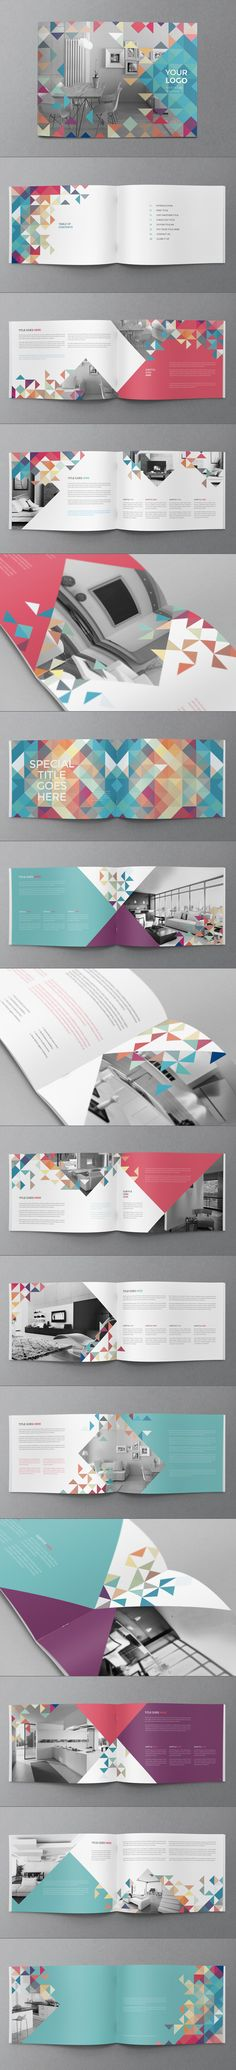 Buy Minimal Colorful Brochure by AbraDesign on GraphicRiver. MINIMAL COLORFUL BROCHURE This brochure is an ideal way to showcase your business in an original way. Layout Design, Graphisches Design, Print Layout, Print Design, Logo Design, Design Brochure, Booklet Design, Brochure Template, Portfolio Covers